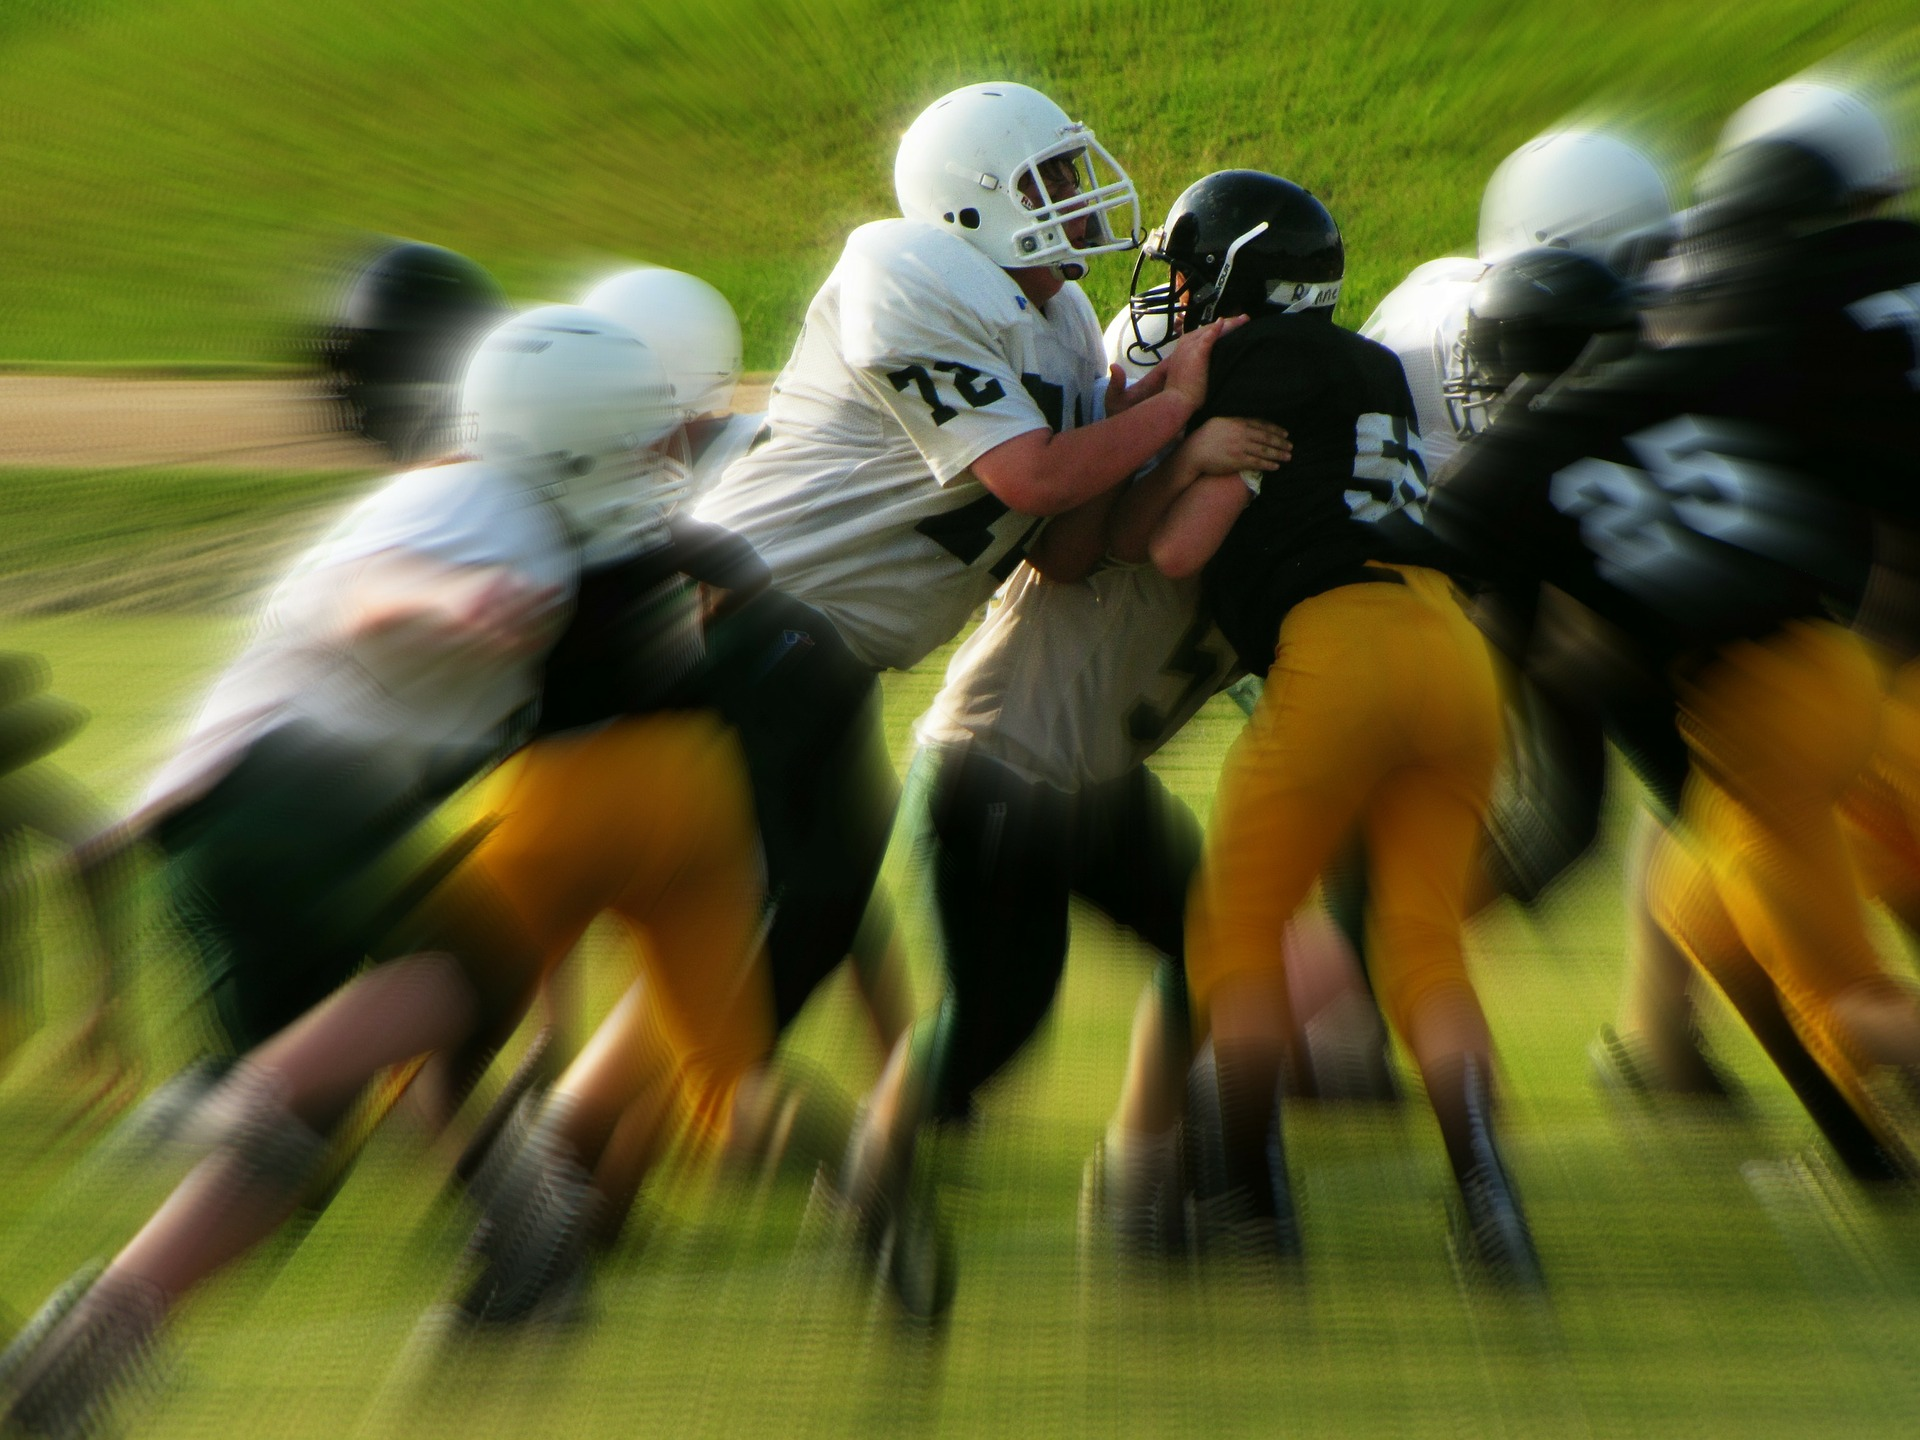 Get Back in the Game with Jefferson Outpatient Imaging